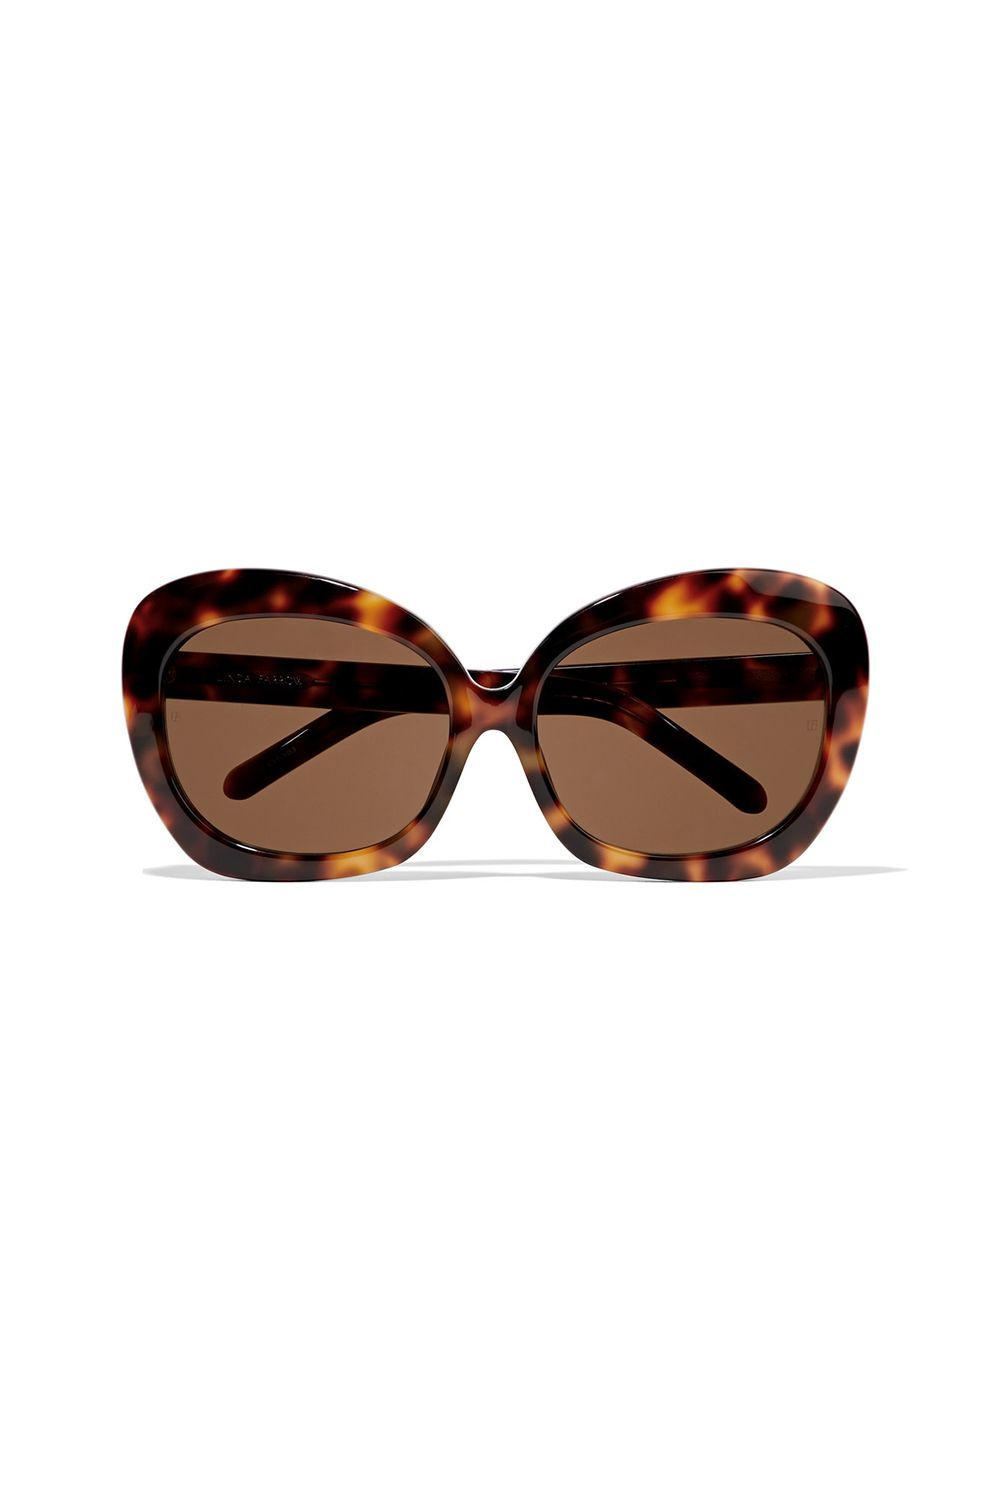 7 Cute Sunglasses You Can Buy On Sale Right Now